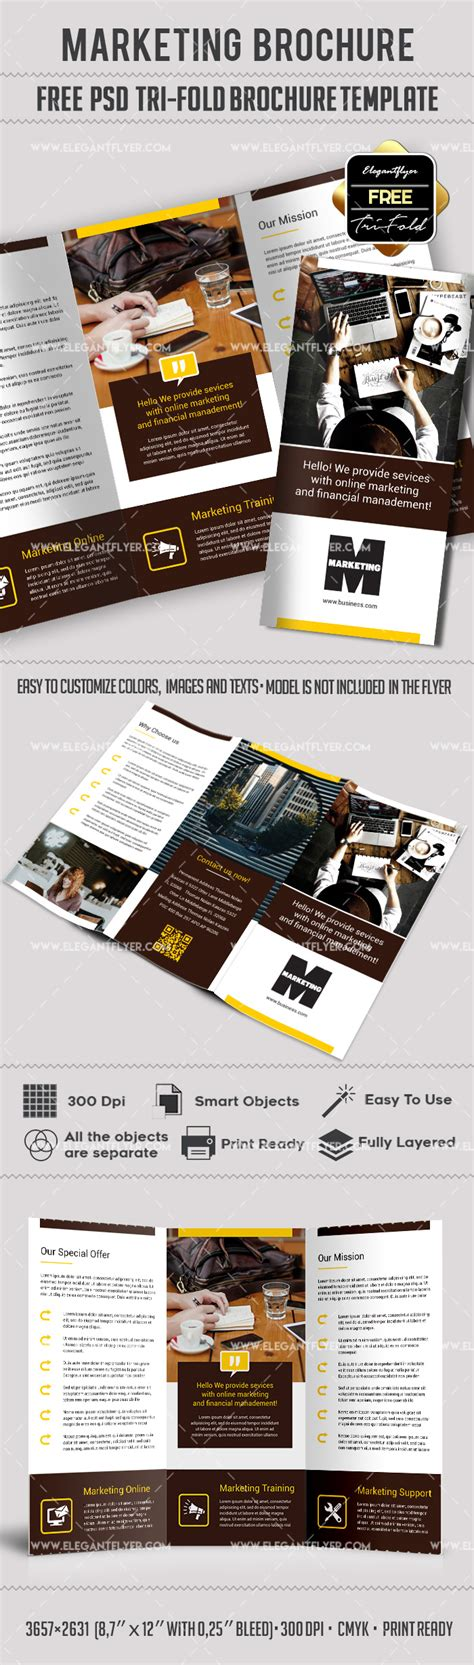 Free Brochure Psd Templates by Marketing Free Tri Fold Psd Brochure Template By